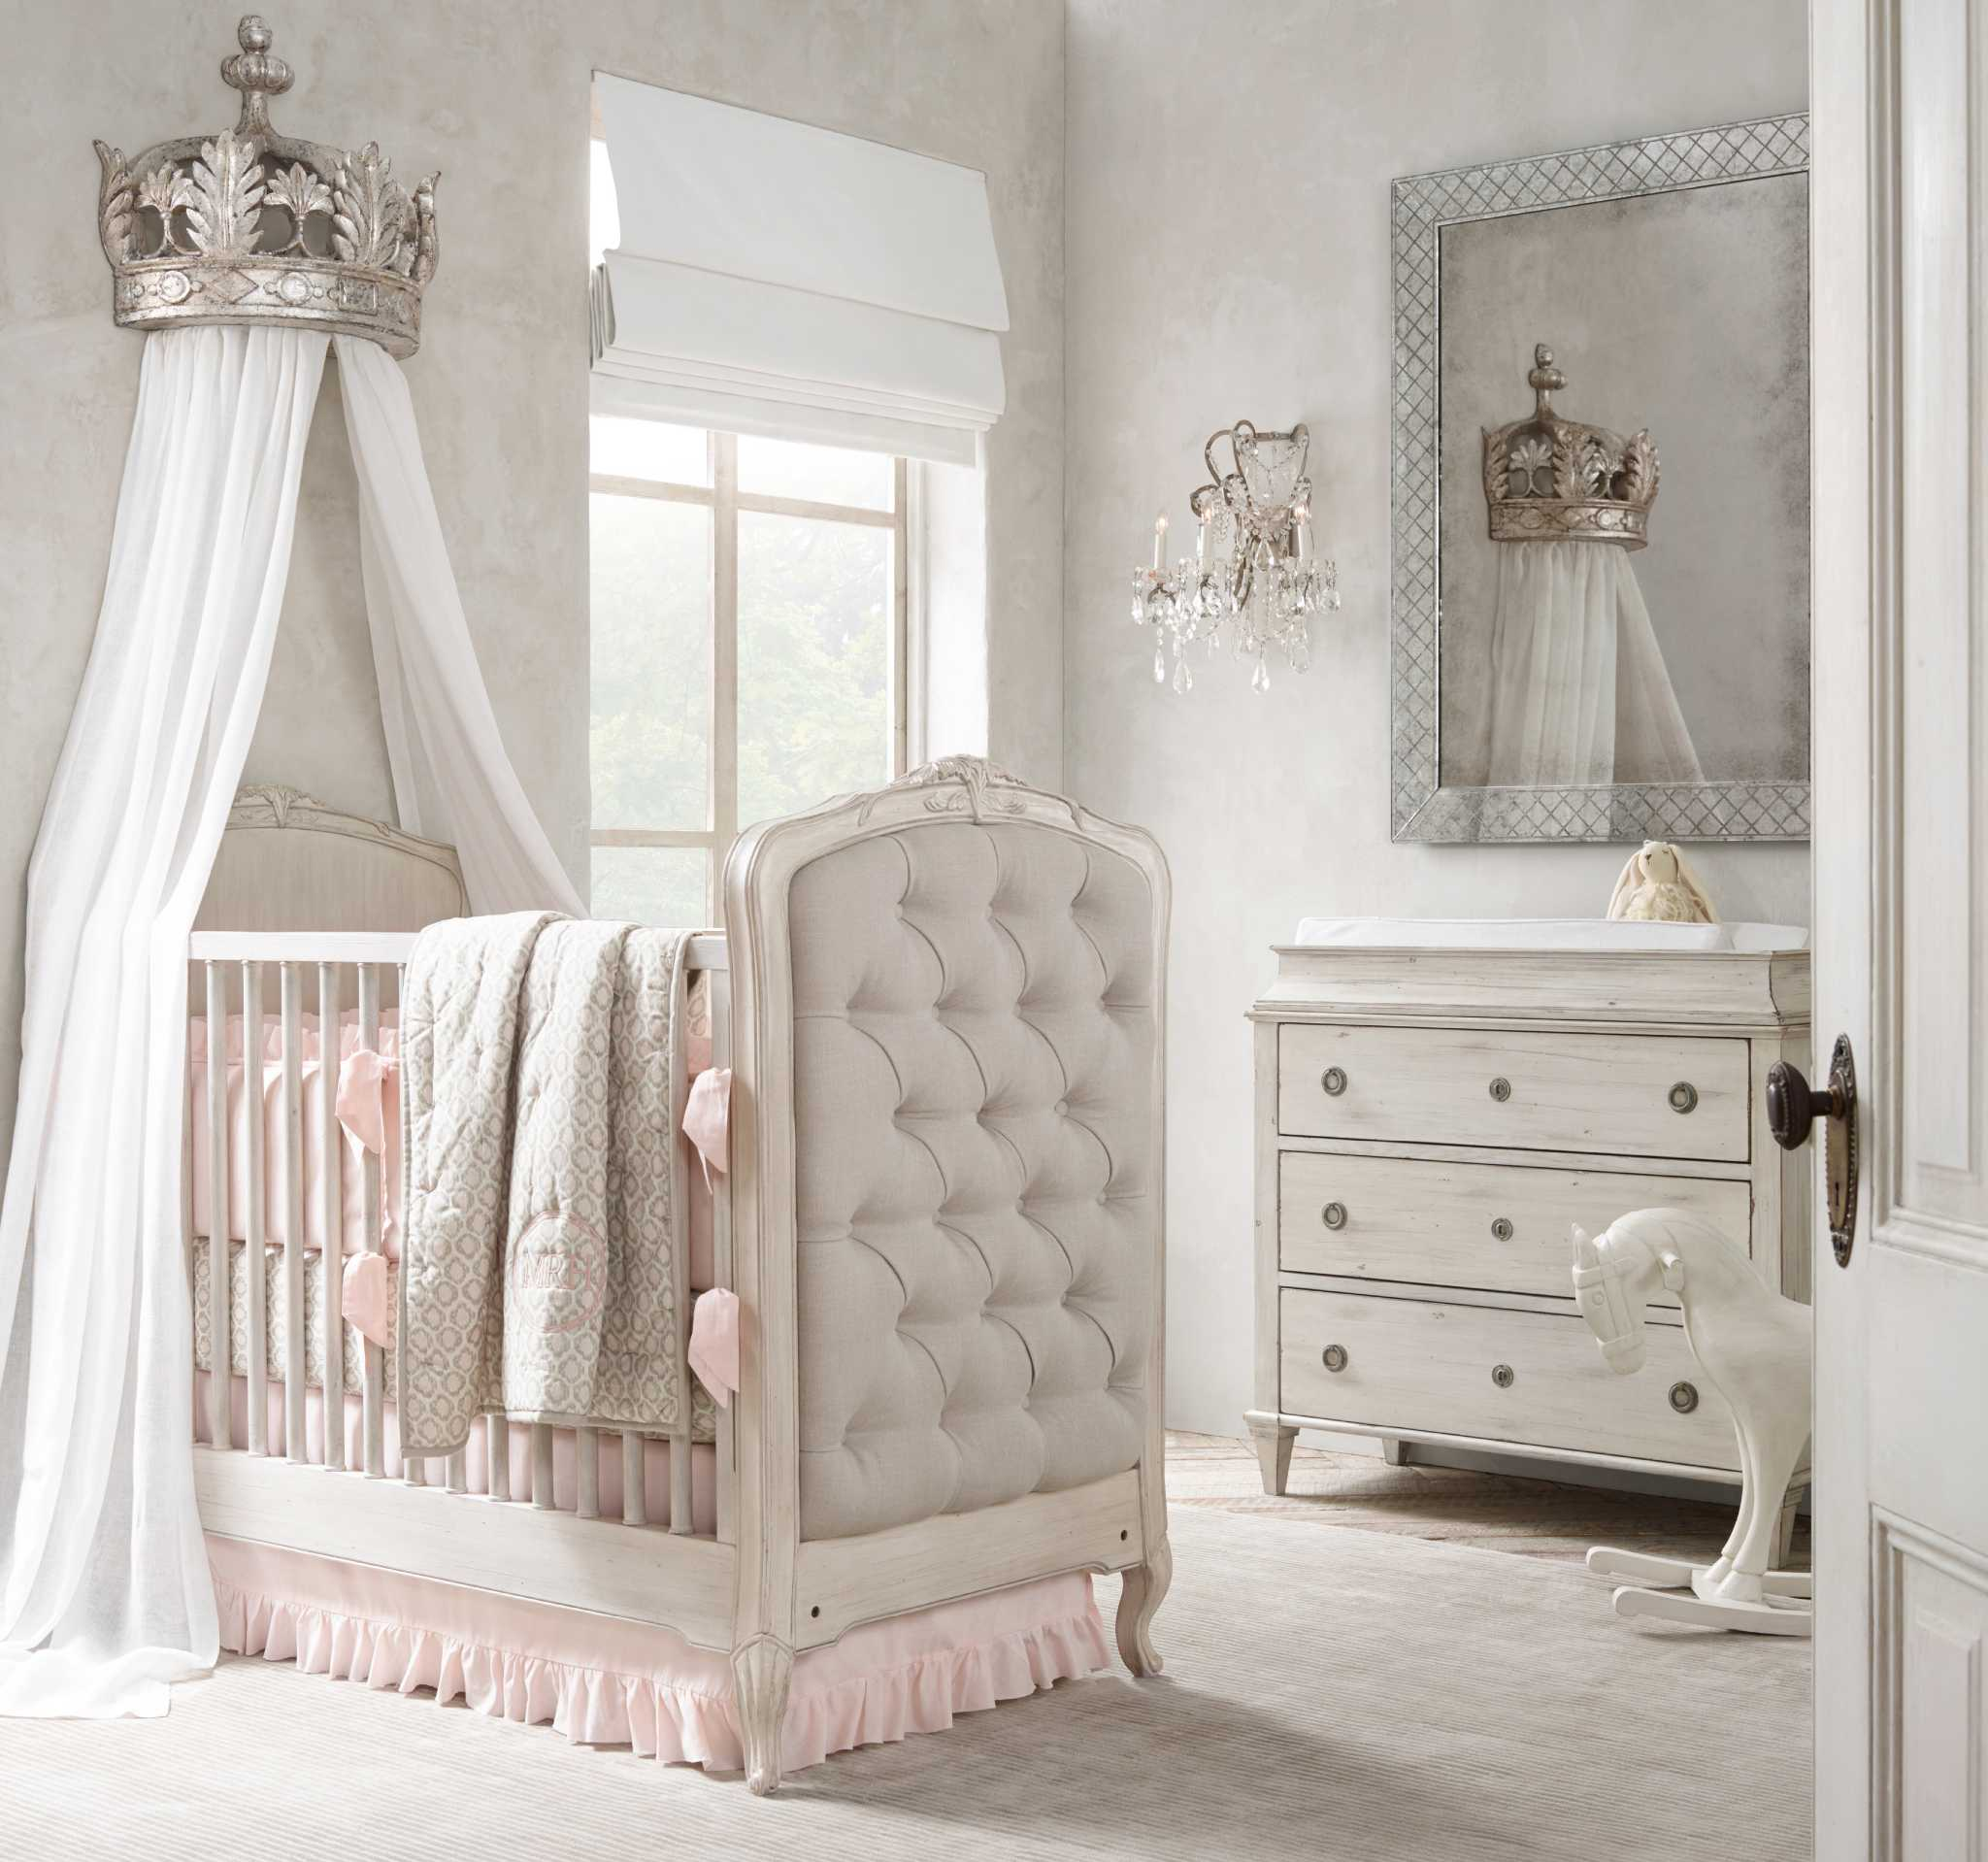 Baby cribs with canopy - Baby Cribs With Canopy 45